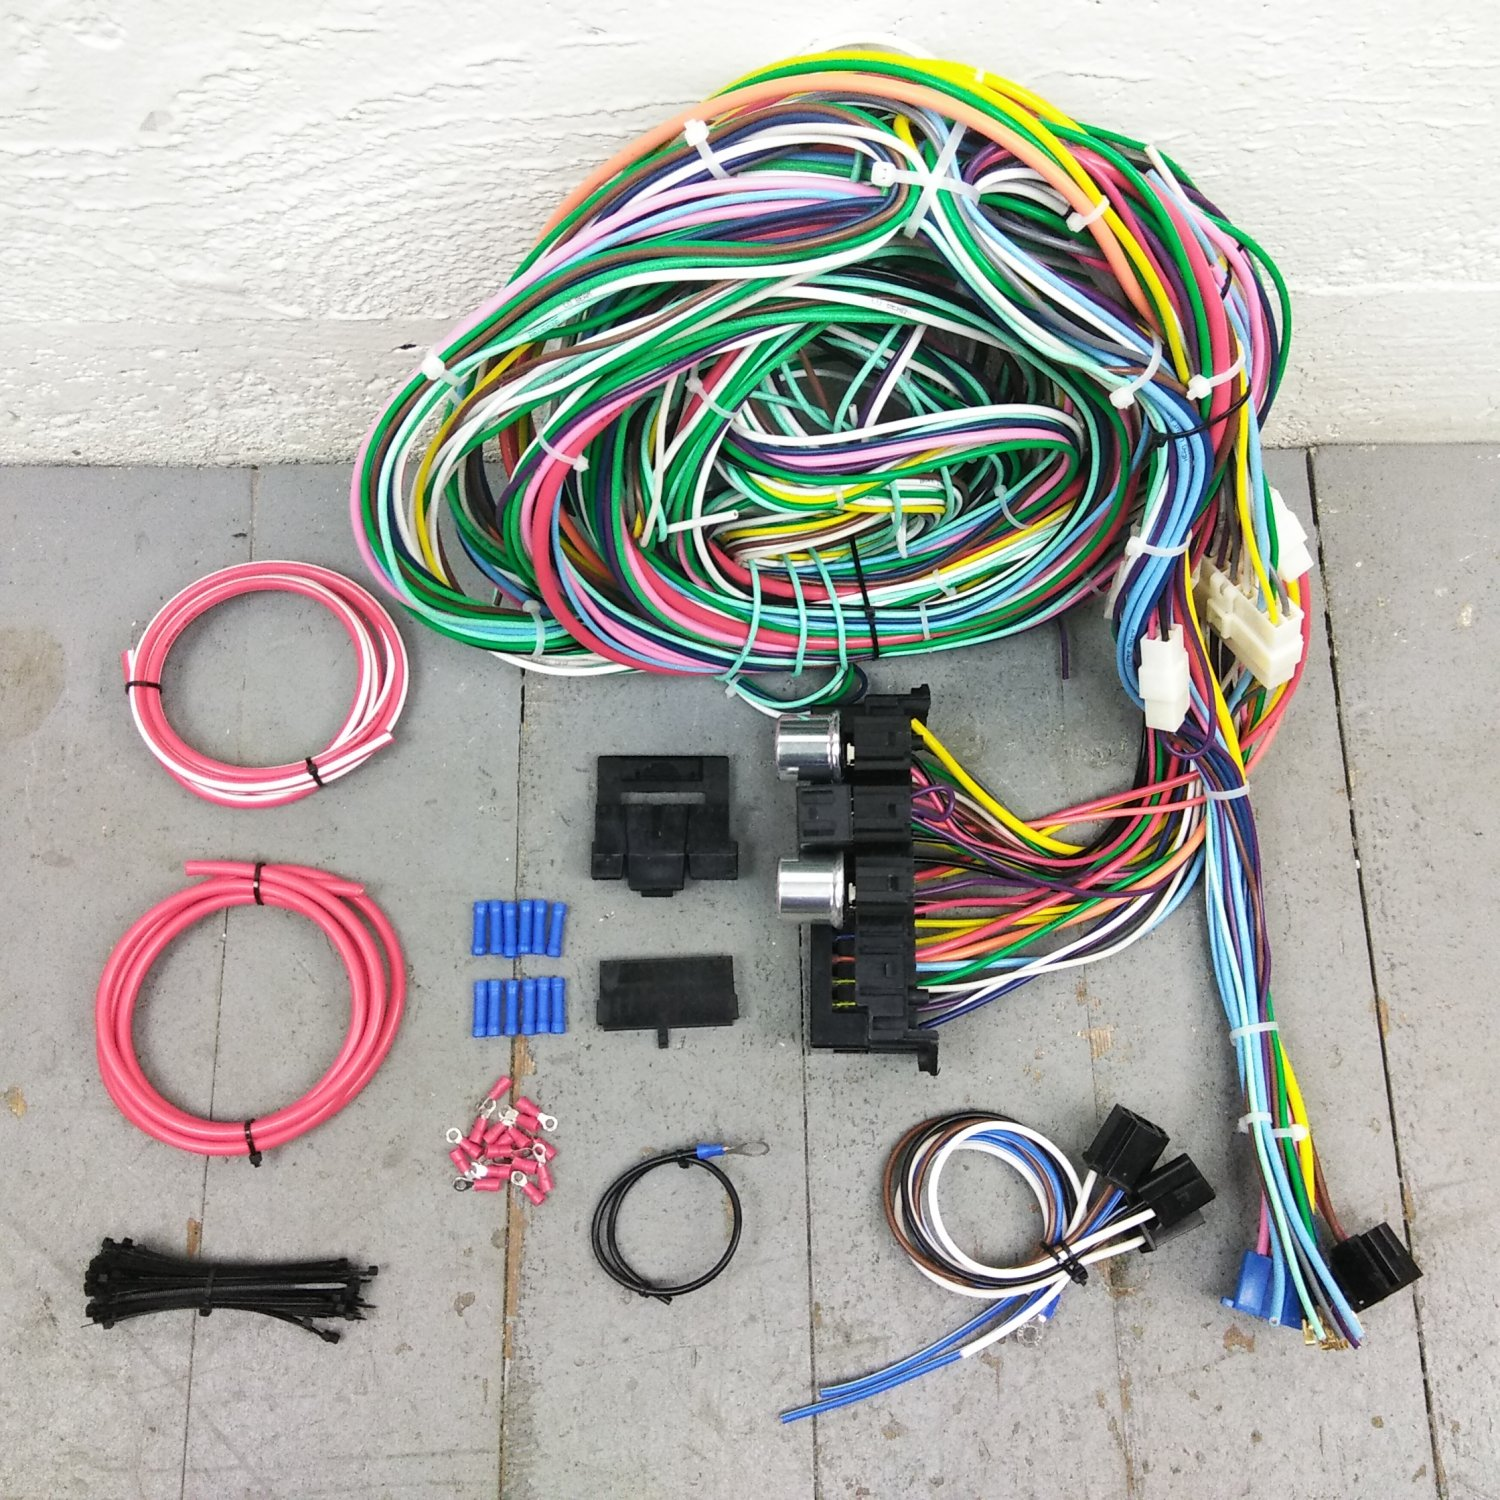 1964 1967 Buick Skylark Wire Harness Upgrade Kit Fits Painless Wiring Hot Rod Circuit Update Bar Product Description C